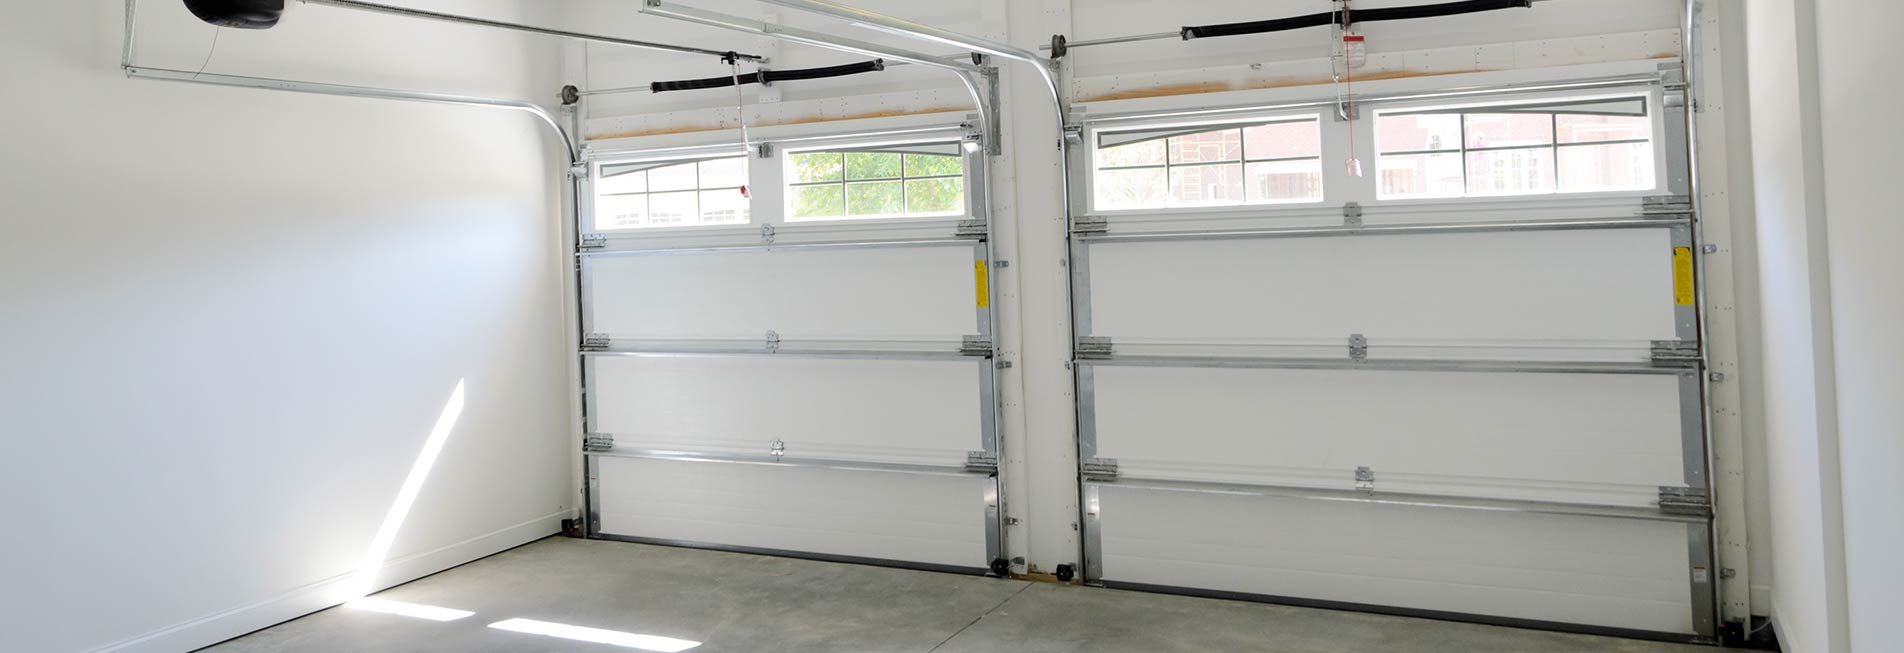 Garage Door Service Repair Thornton, PA 484-254-4899